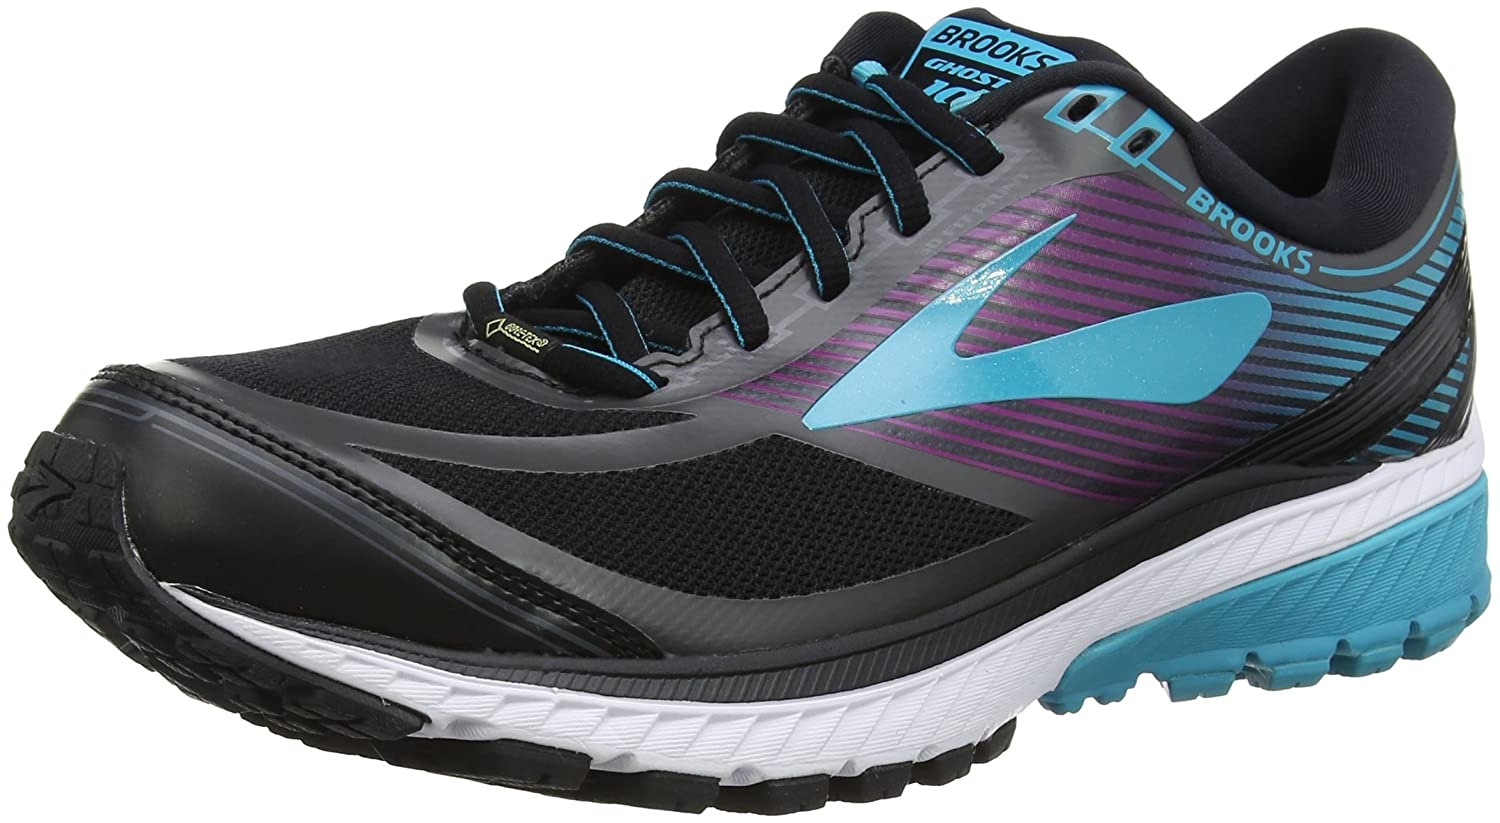 Brooks Womens Ghost 10 GTX B01N8XI1XZ 9.5 B(M) US|Black/Peacock Blue/Hollyhock